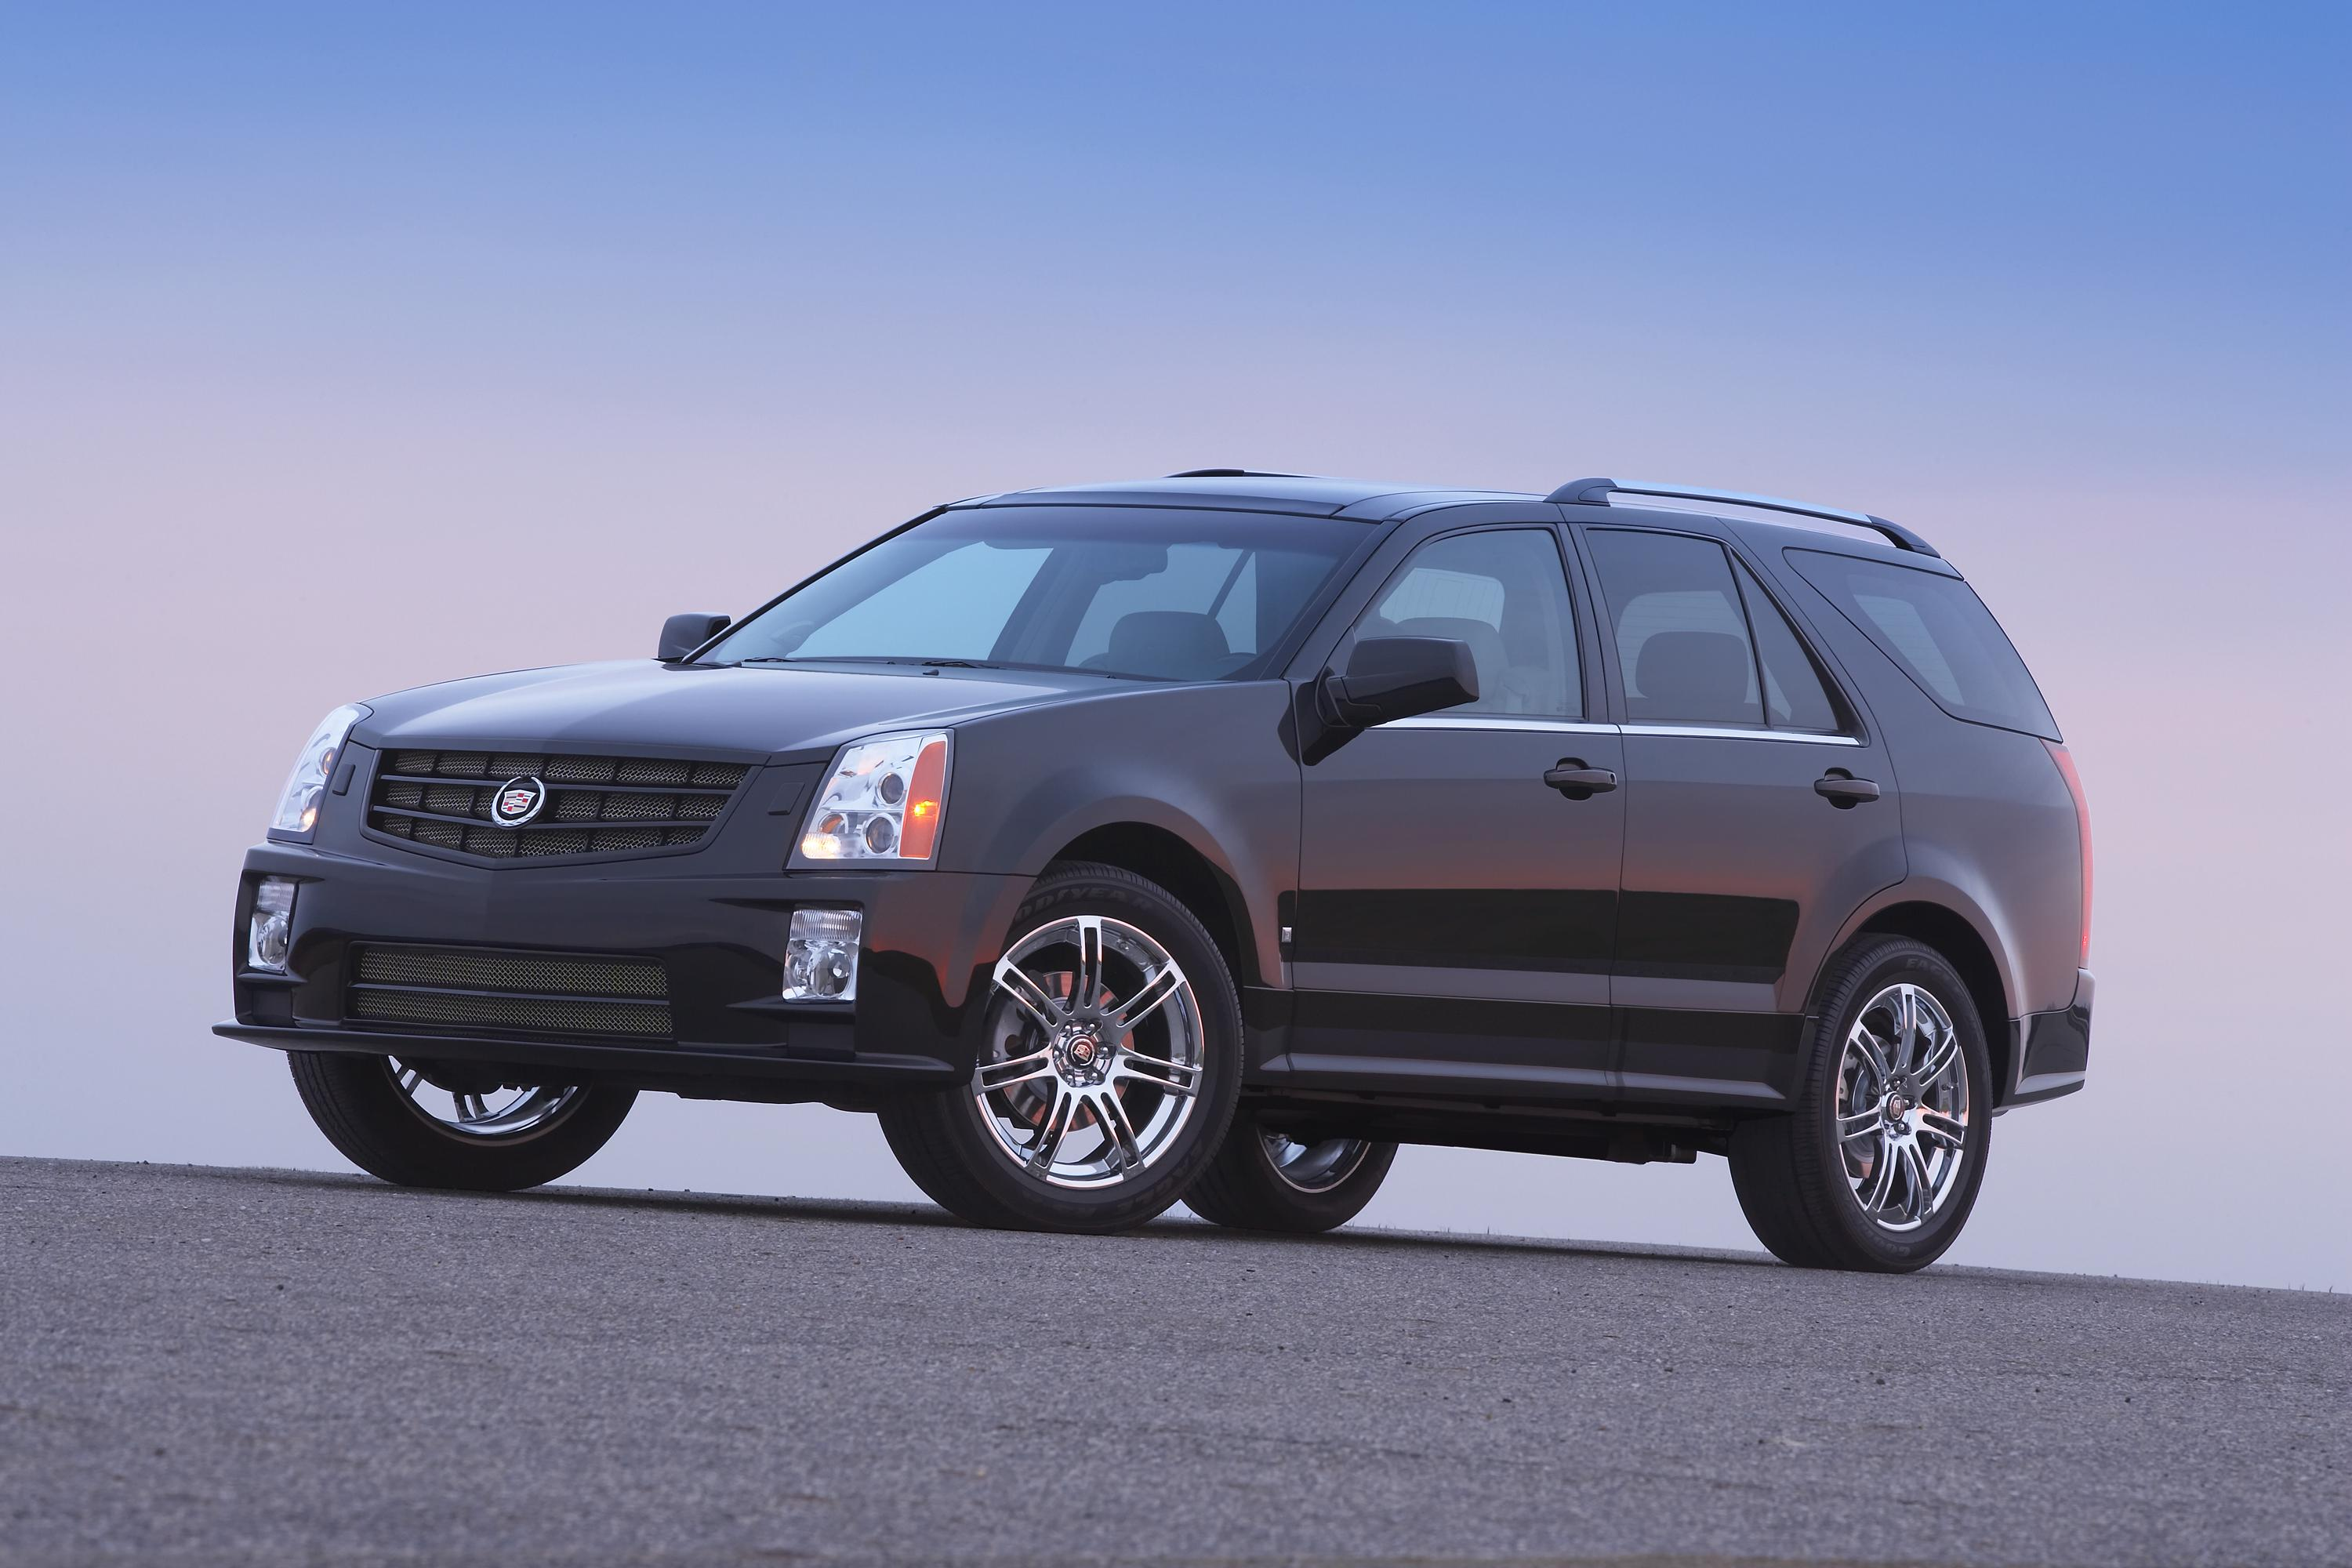 2008 Cadillac SRX | Top Sd